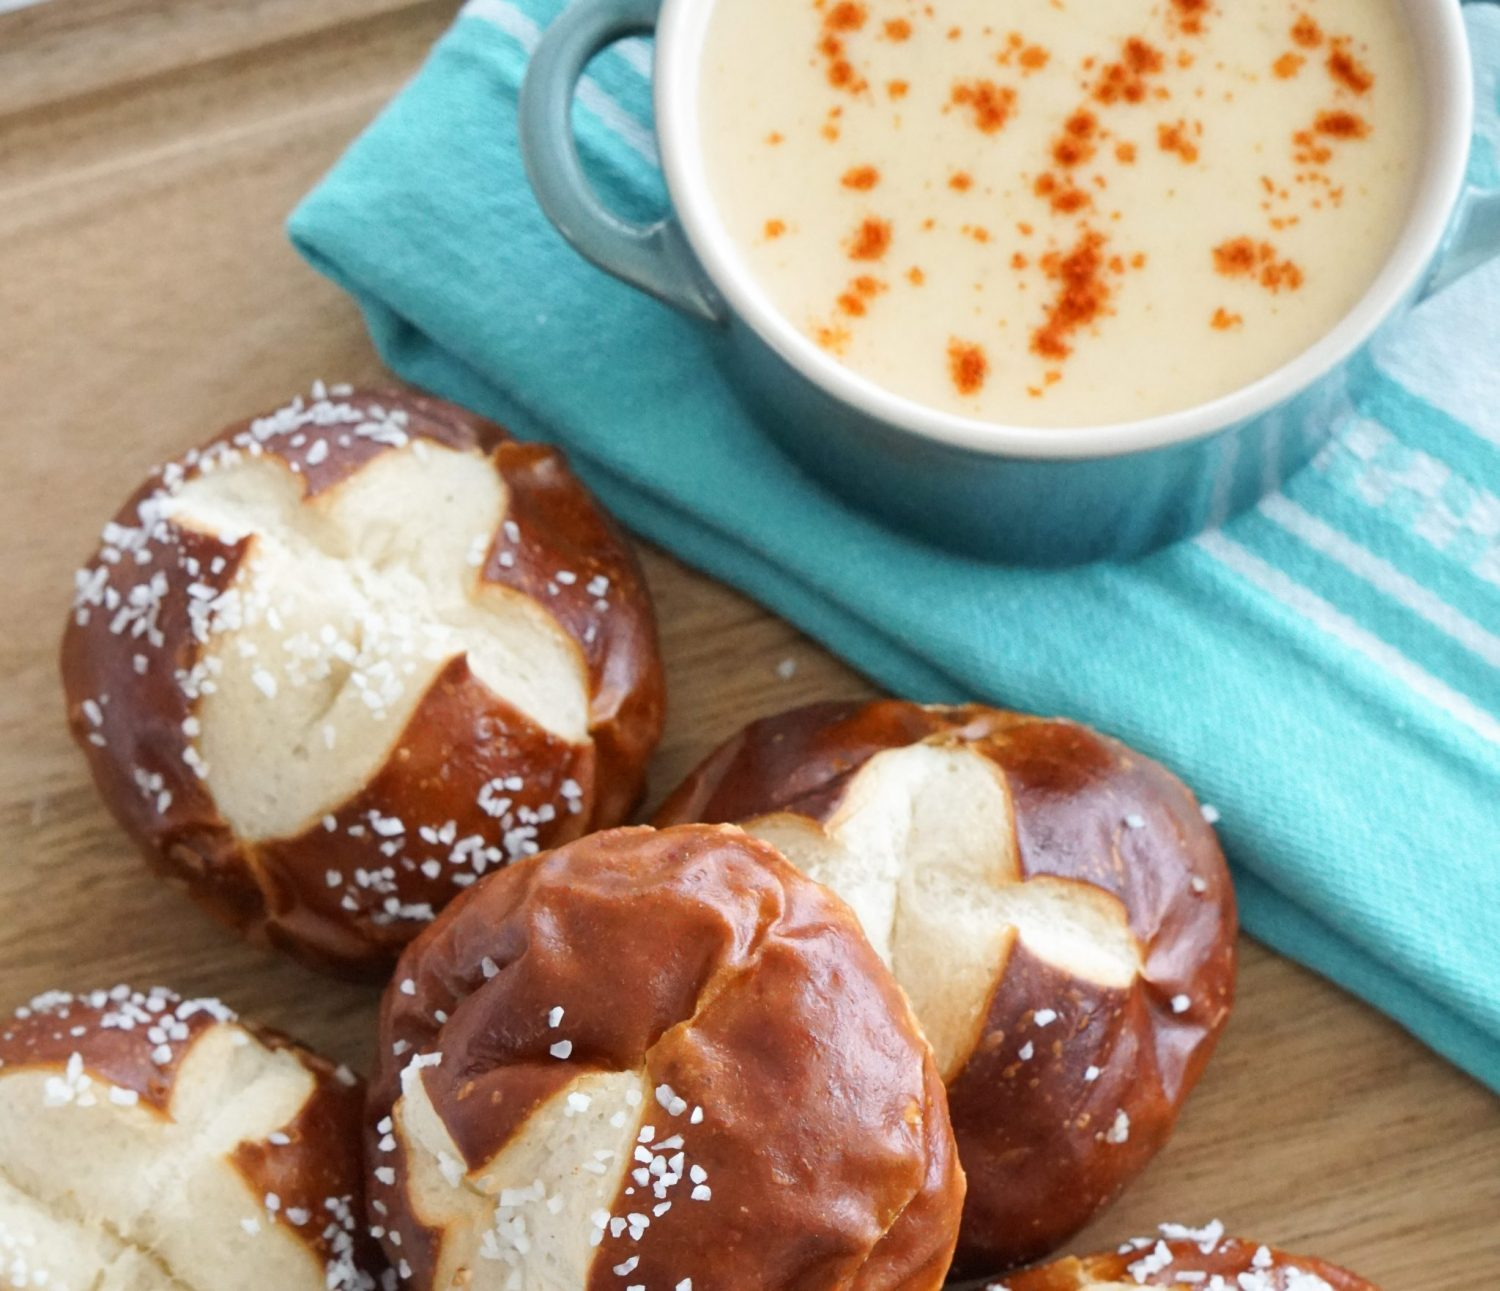 Smoked Cheddar Beer Cheese with Soft Pretzels